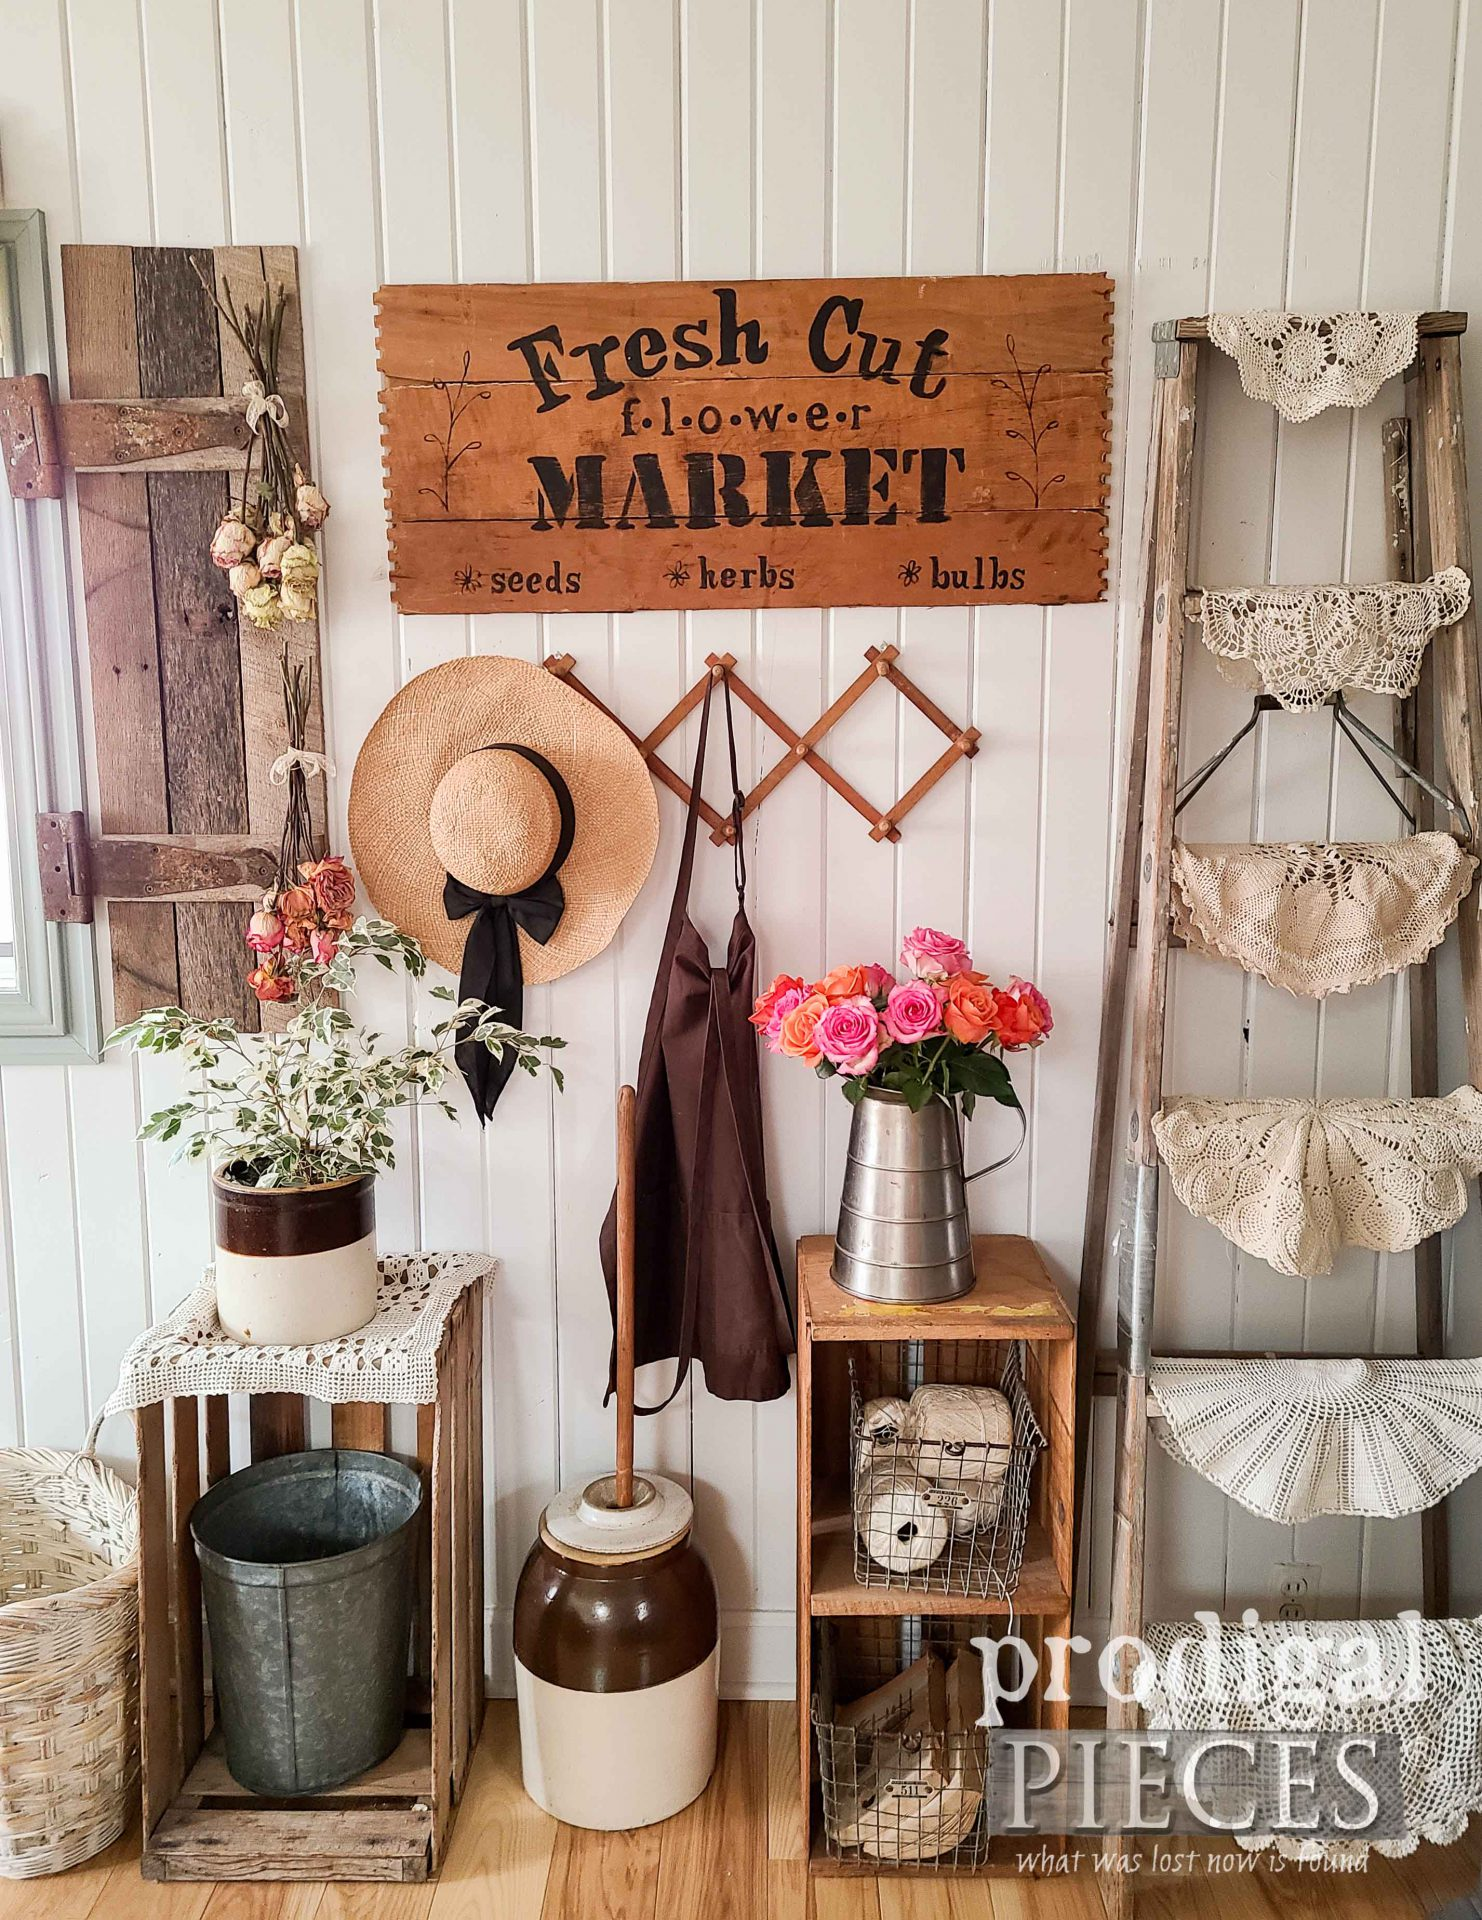 Farmhouse Flower Market Sign Made from Repurposed Broken Drawers by Larissa of Prodigal Pieces | prodigalpieces.com #prodigalpieces #farmhouse #spring #home #homedecor